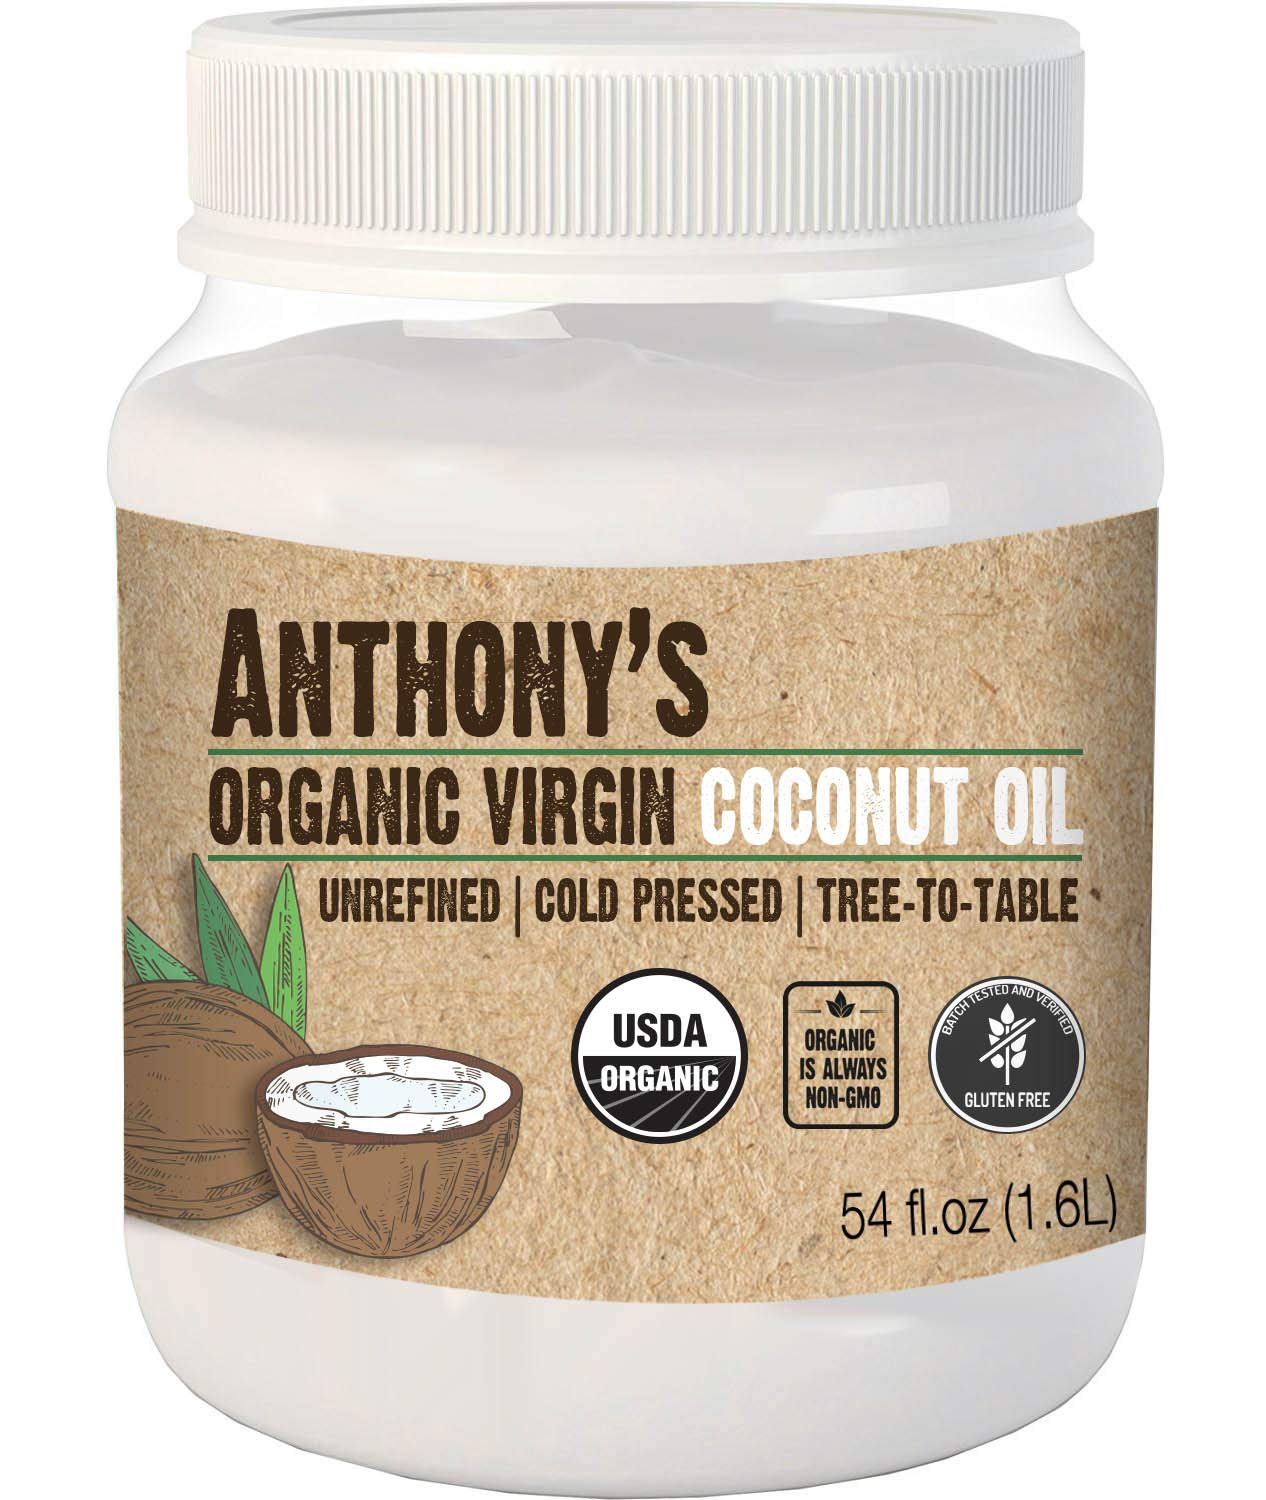 Anthony's Organic Virgin Coconut Oil (54 Oz) Unrefined, Cold Pressed, Tree to Table